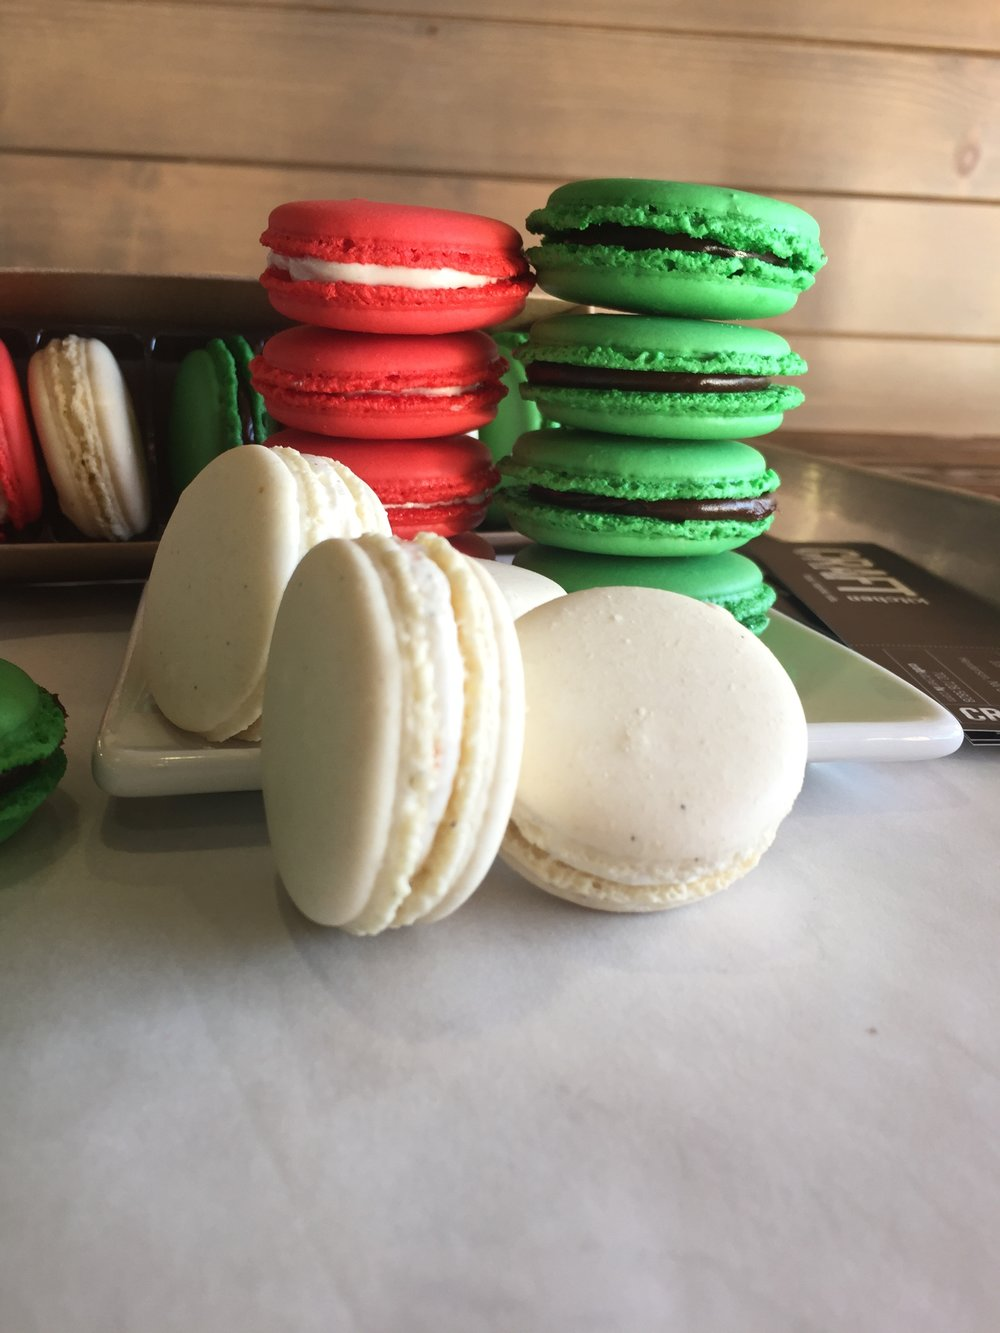 CRAFTkitchen Las Vegas Holiday Macarons.JPG